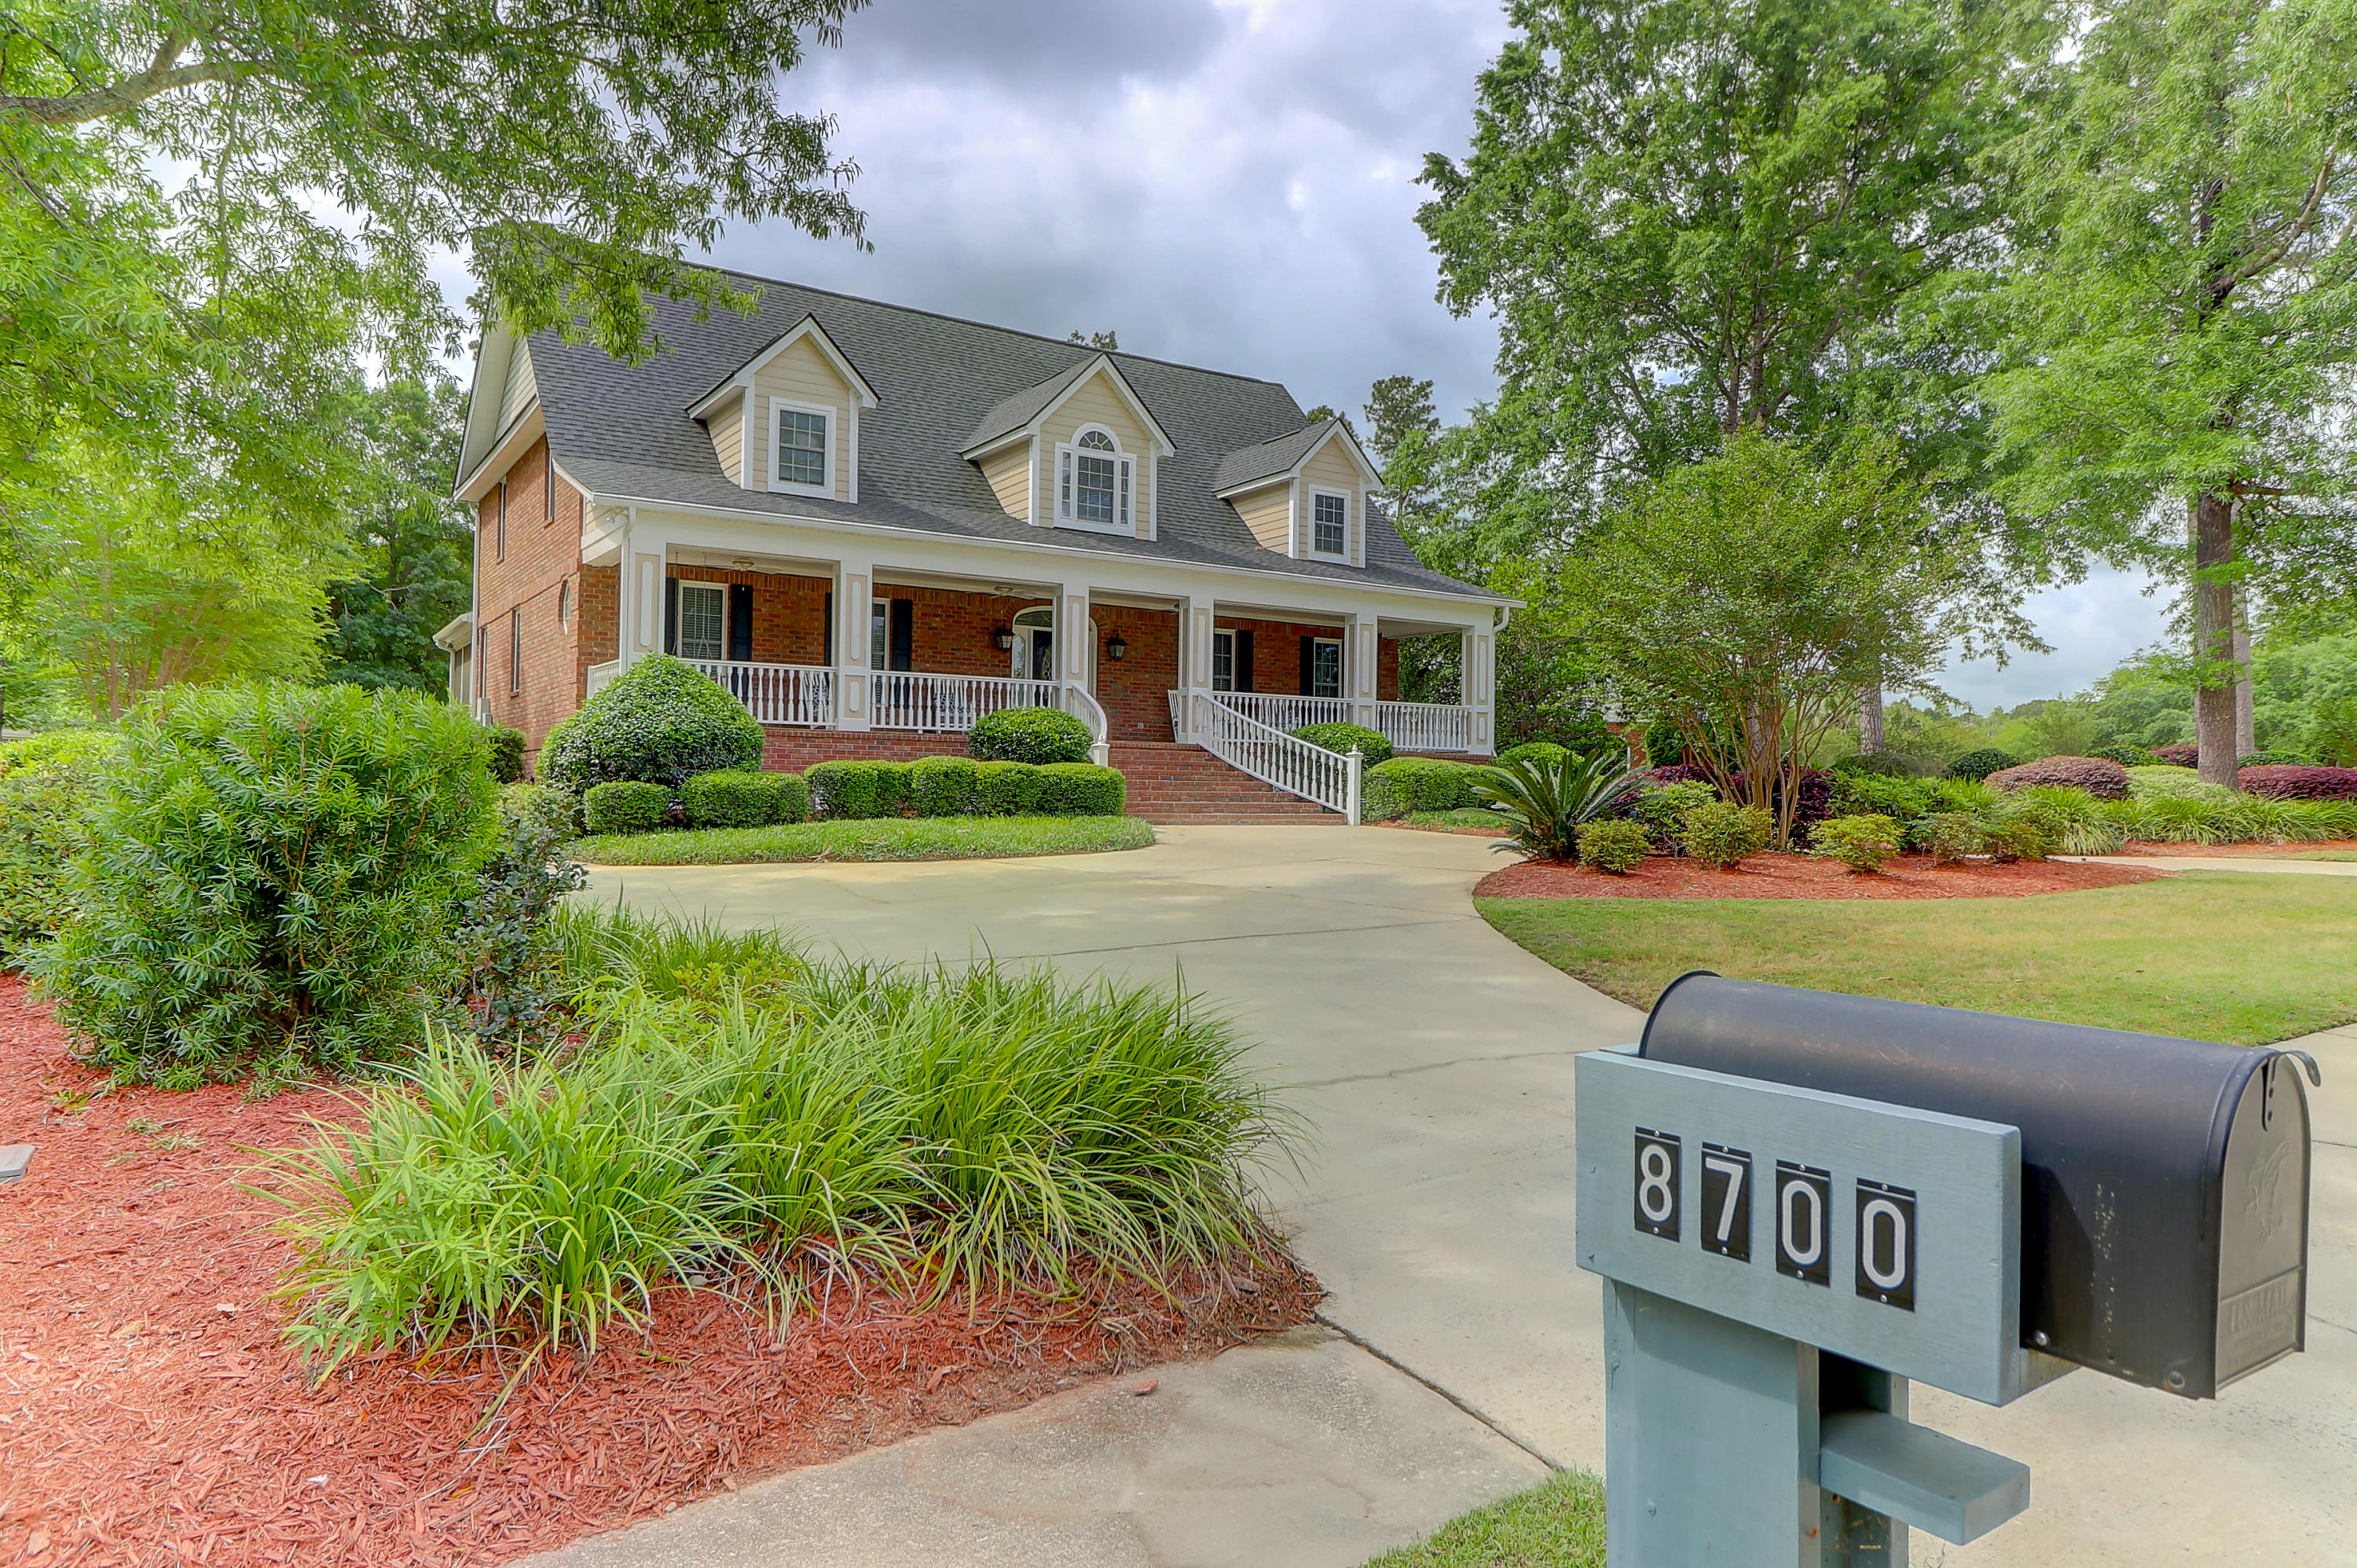 Coosaw Creek Country Club Homes For Sale - 8700 Fairway Woods, North Charleston, SC - 1